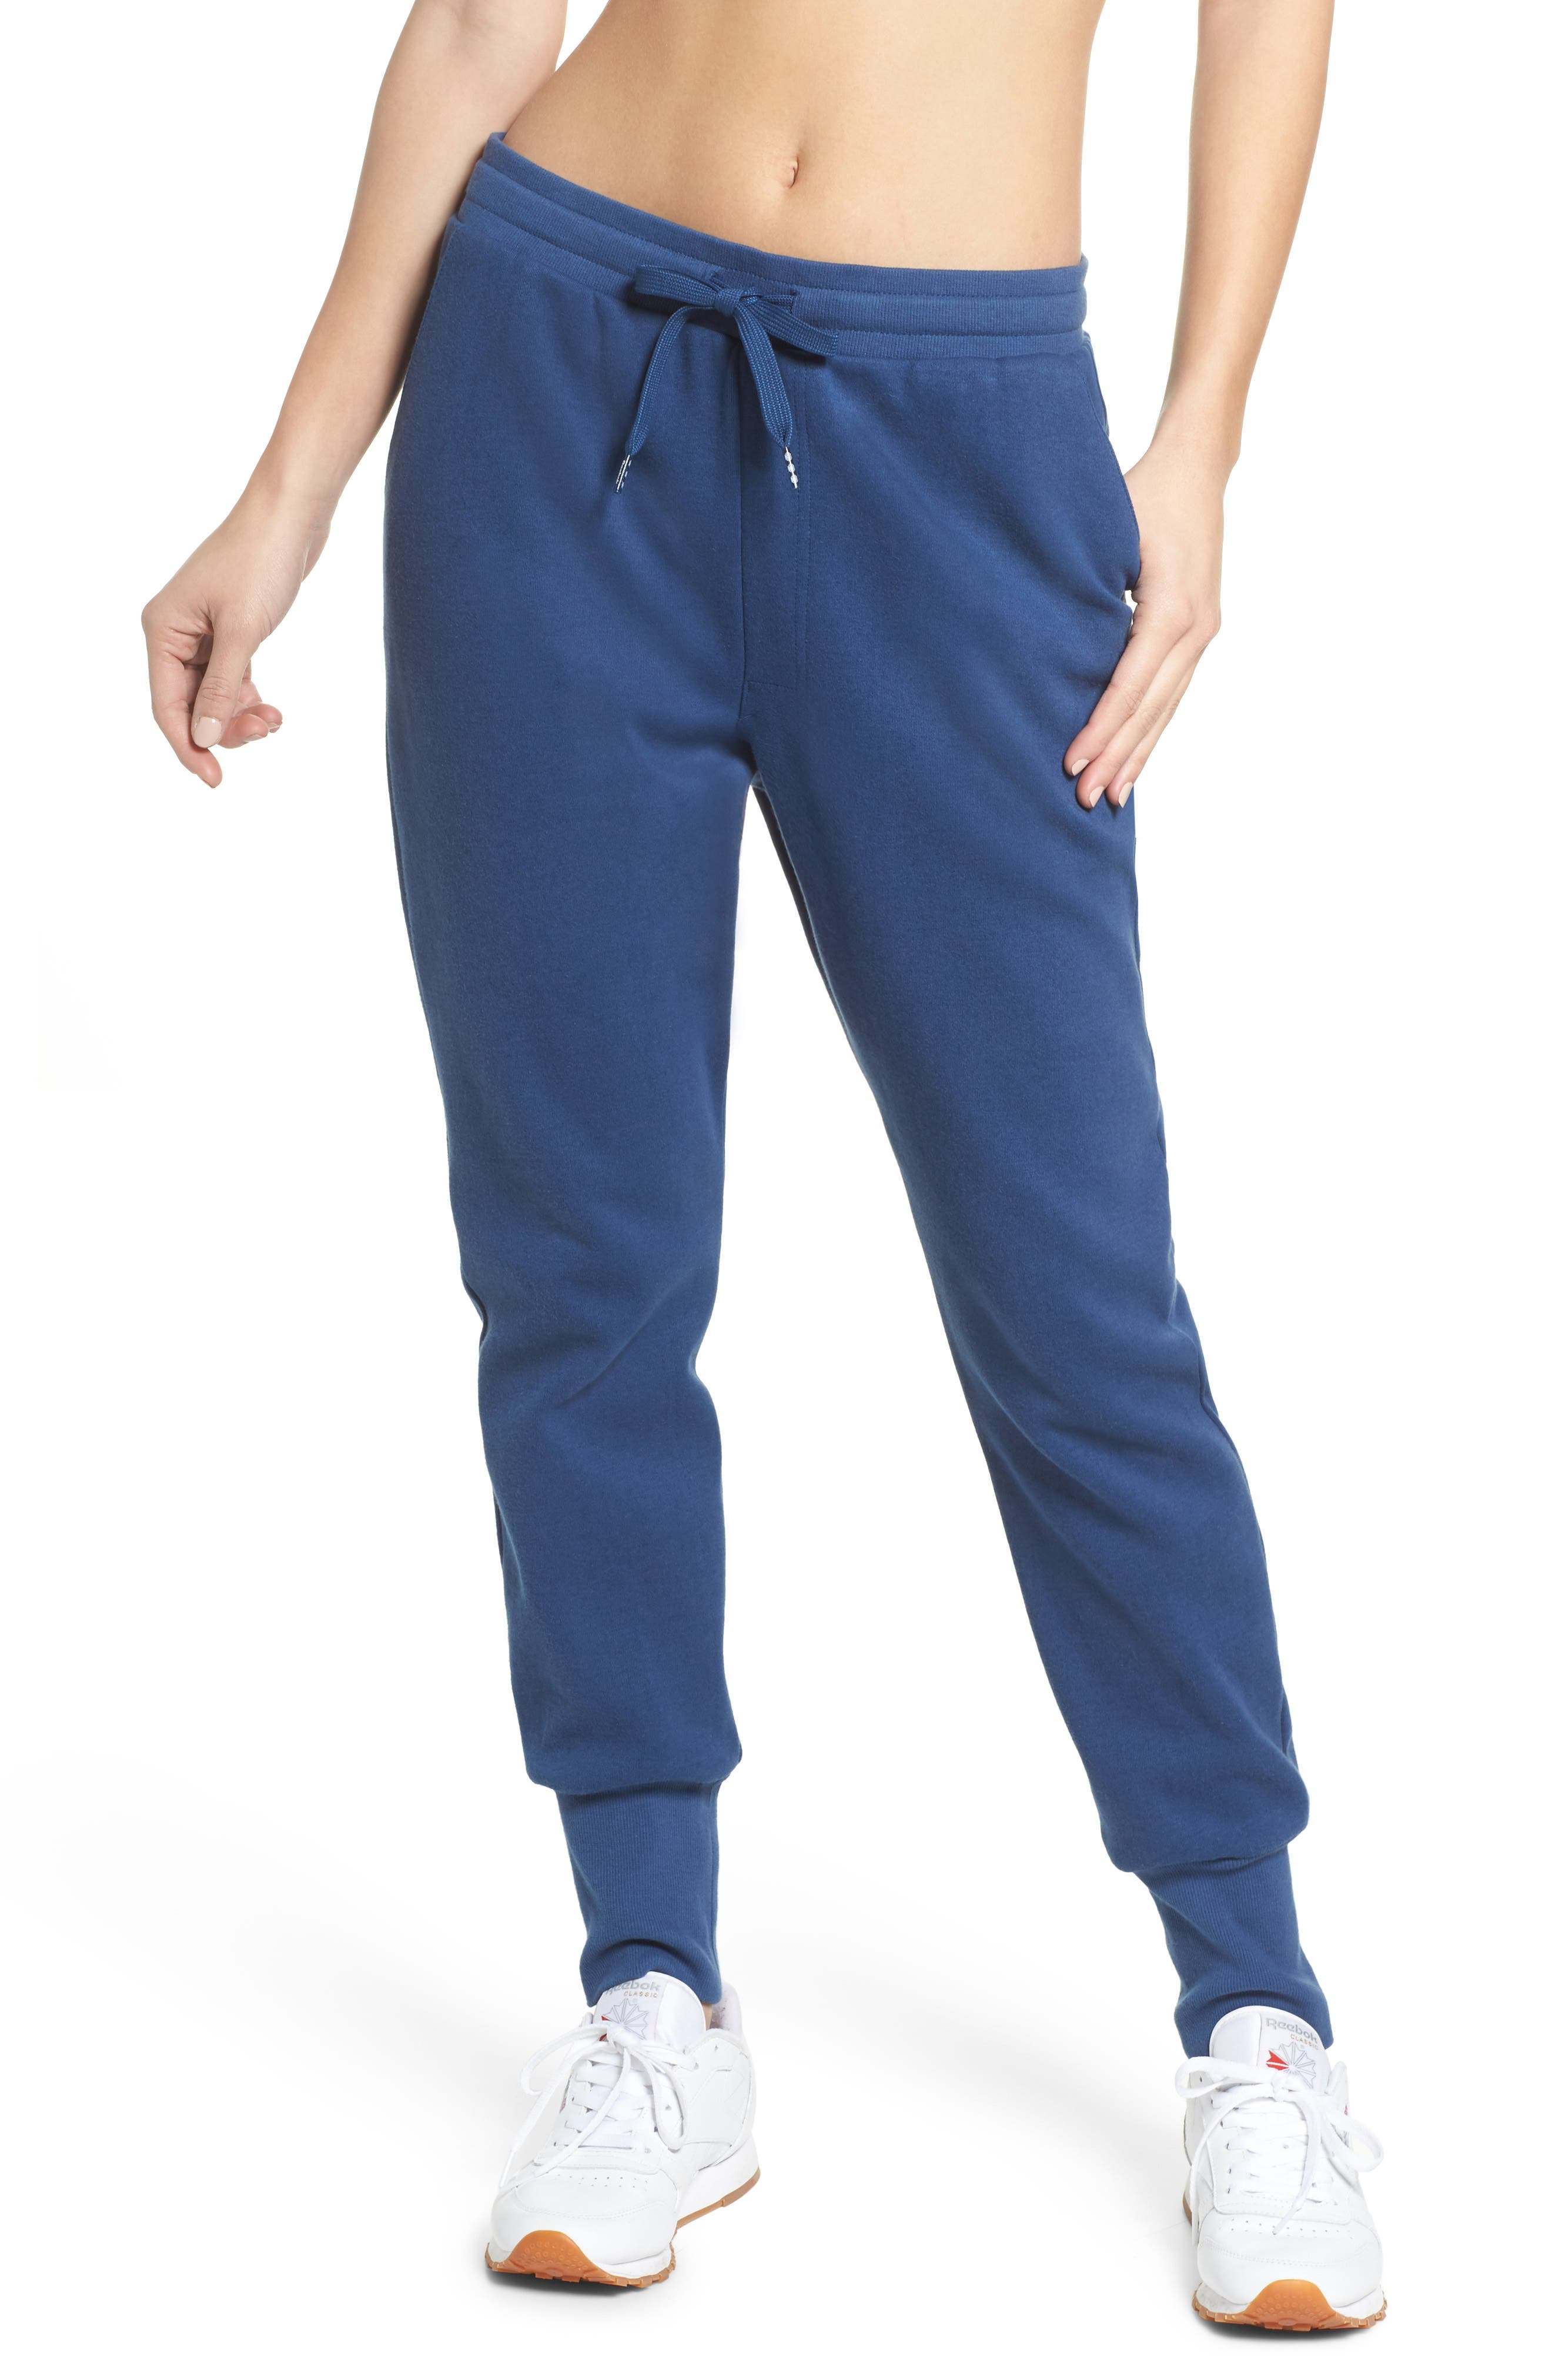 DC Jogger Pants,                         Main,                         color, Washed Blue